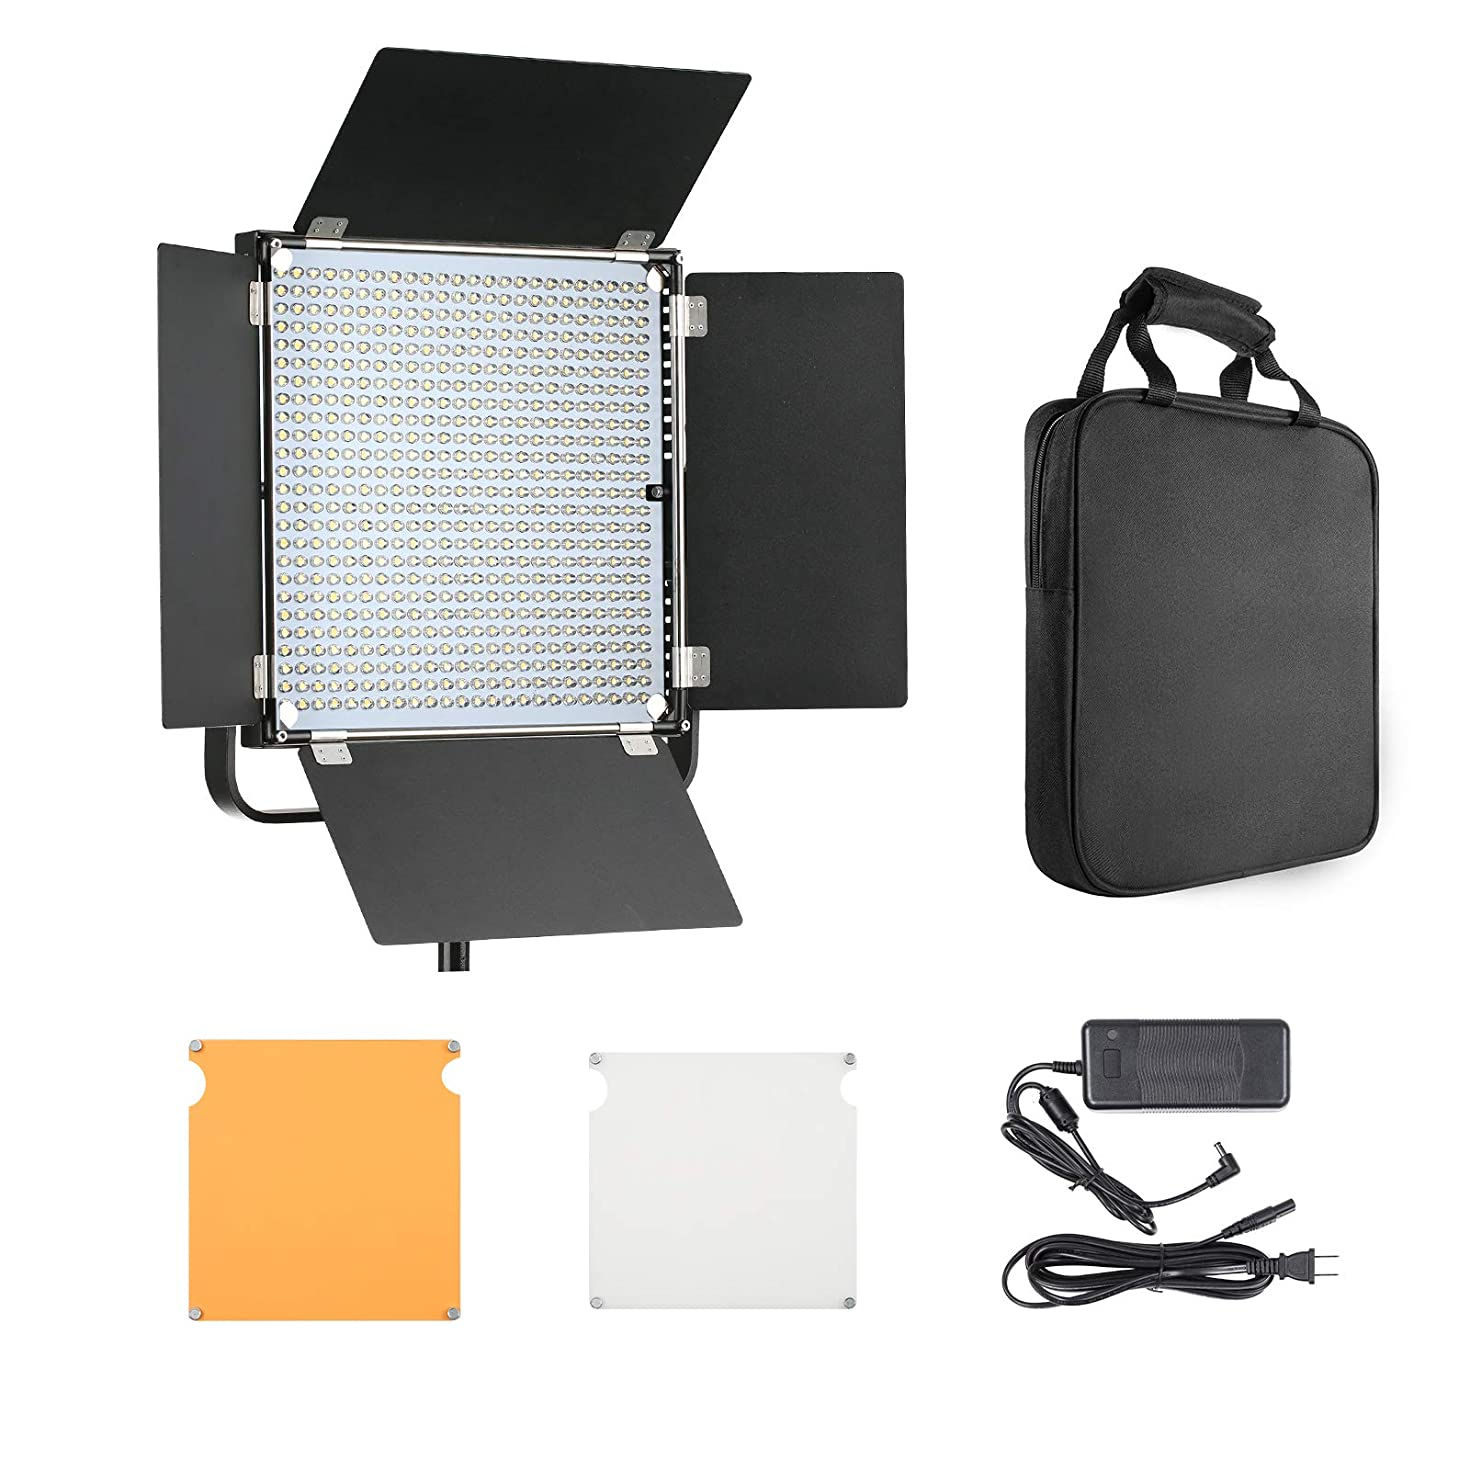 LED Panel Light Photography Barn Doors 40W 4500LM Dimmable Continuous Output Lighting Studio Product Interview Portrait YouTube Video Shooting 48CH 6 Groups